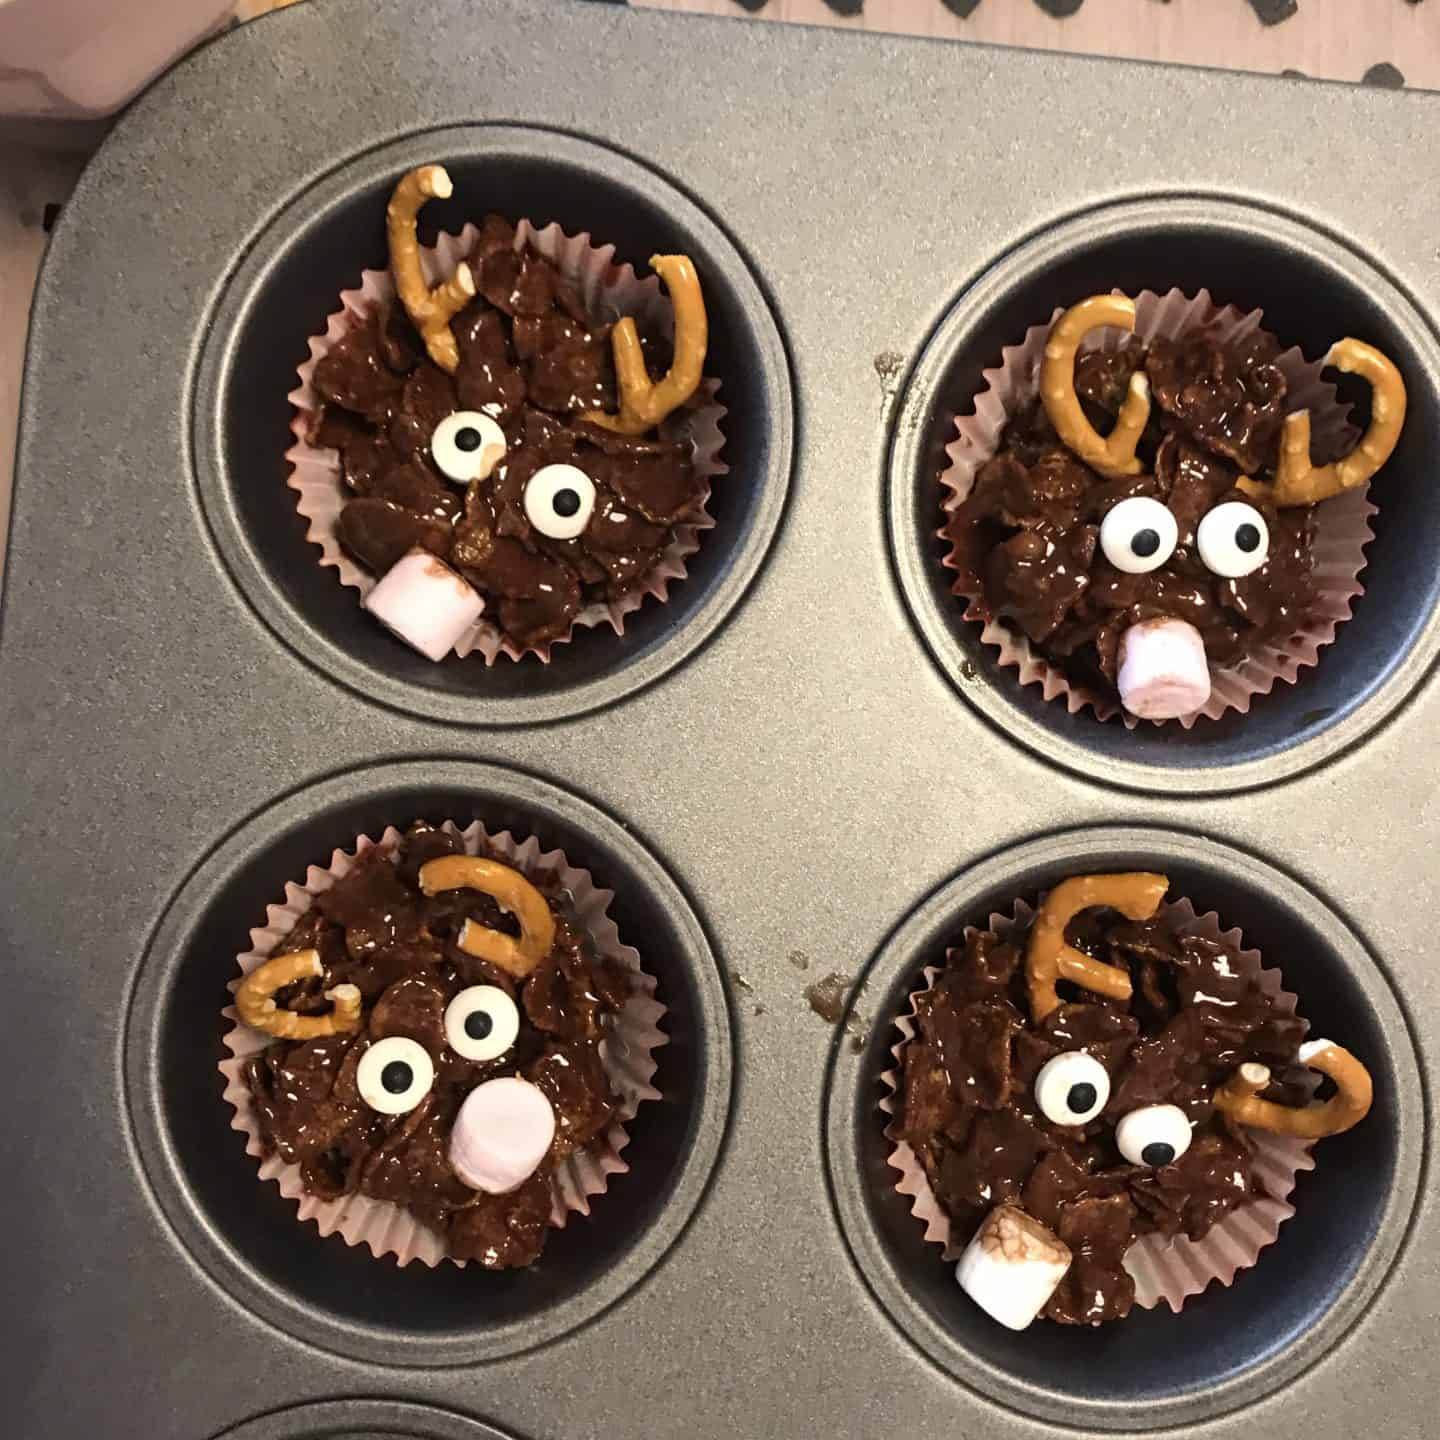 Decorate your chocolate conflake cakes with broken pretzels, candy eyes and marshmallows to make reindeer faces